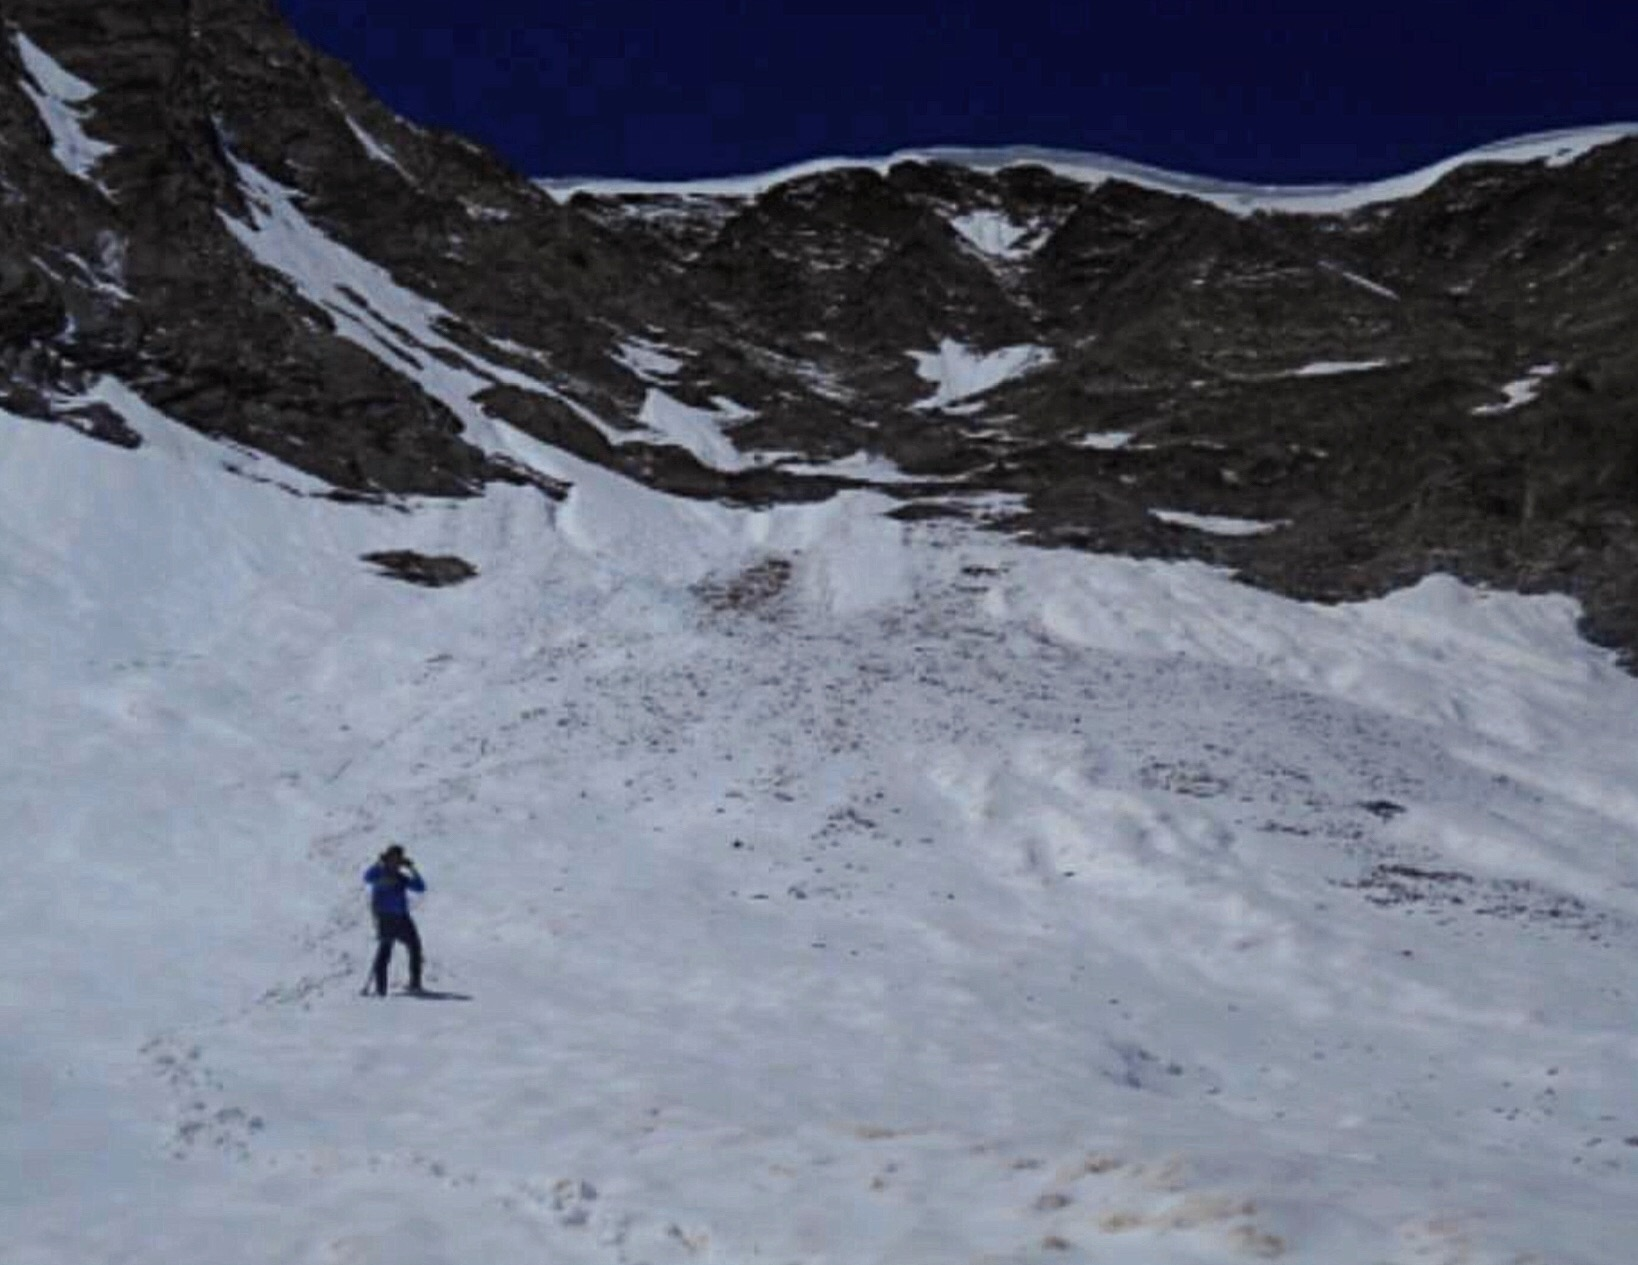 Taylor below the cornice on the Petros-Pahsimeroi Pyramid saddle after a quick descent. Pat McGrane Photo